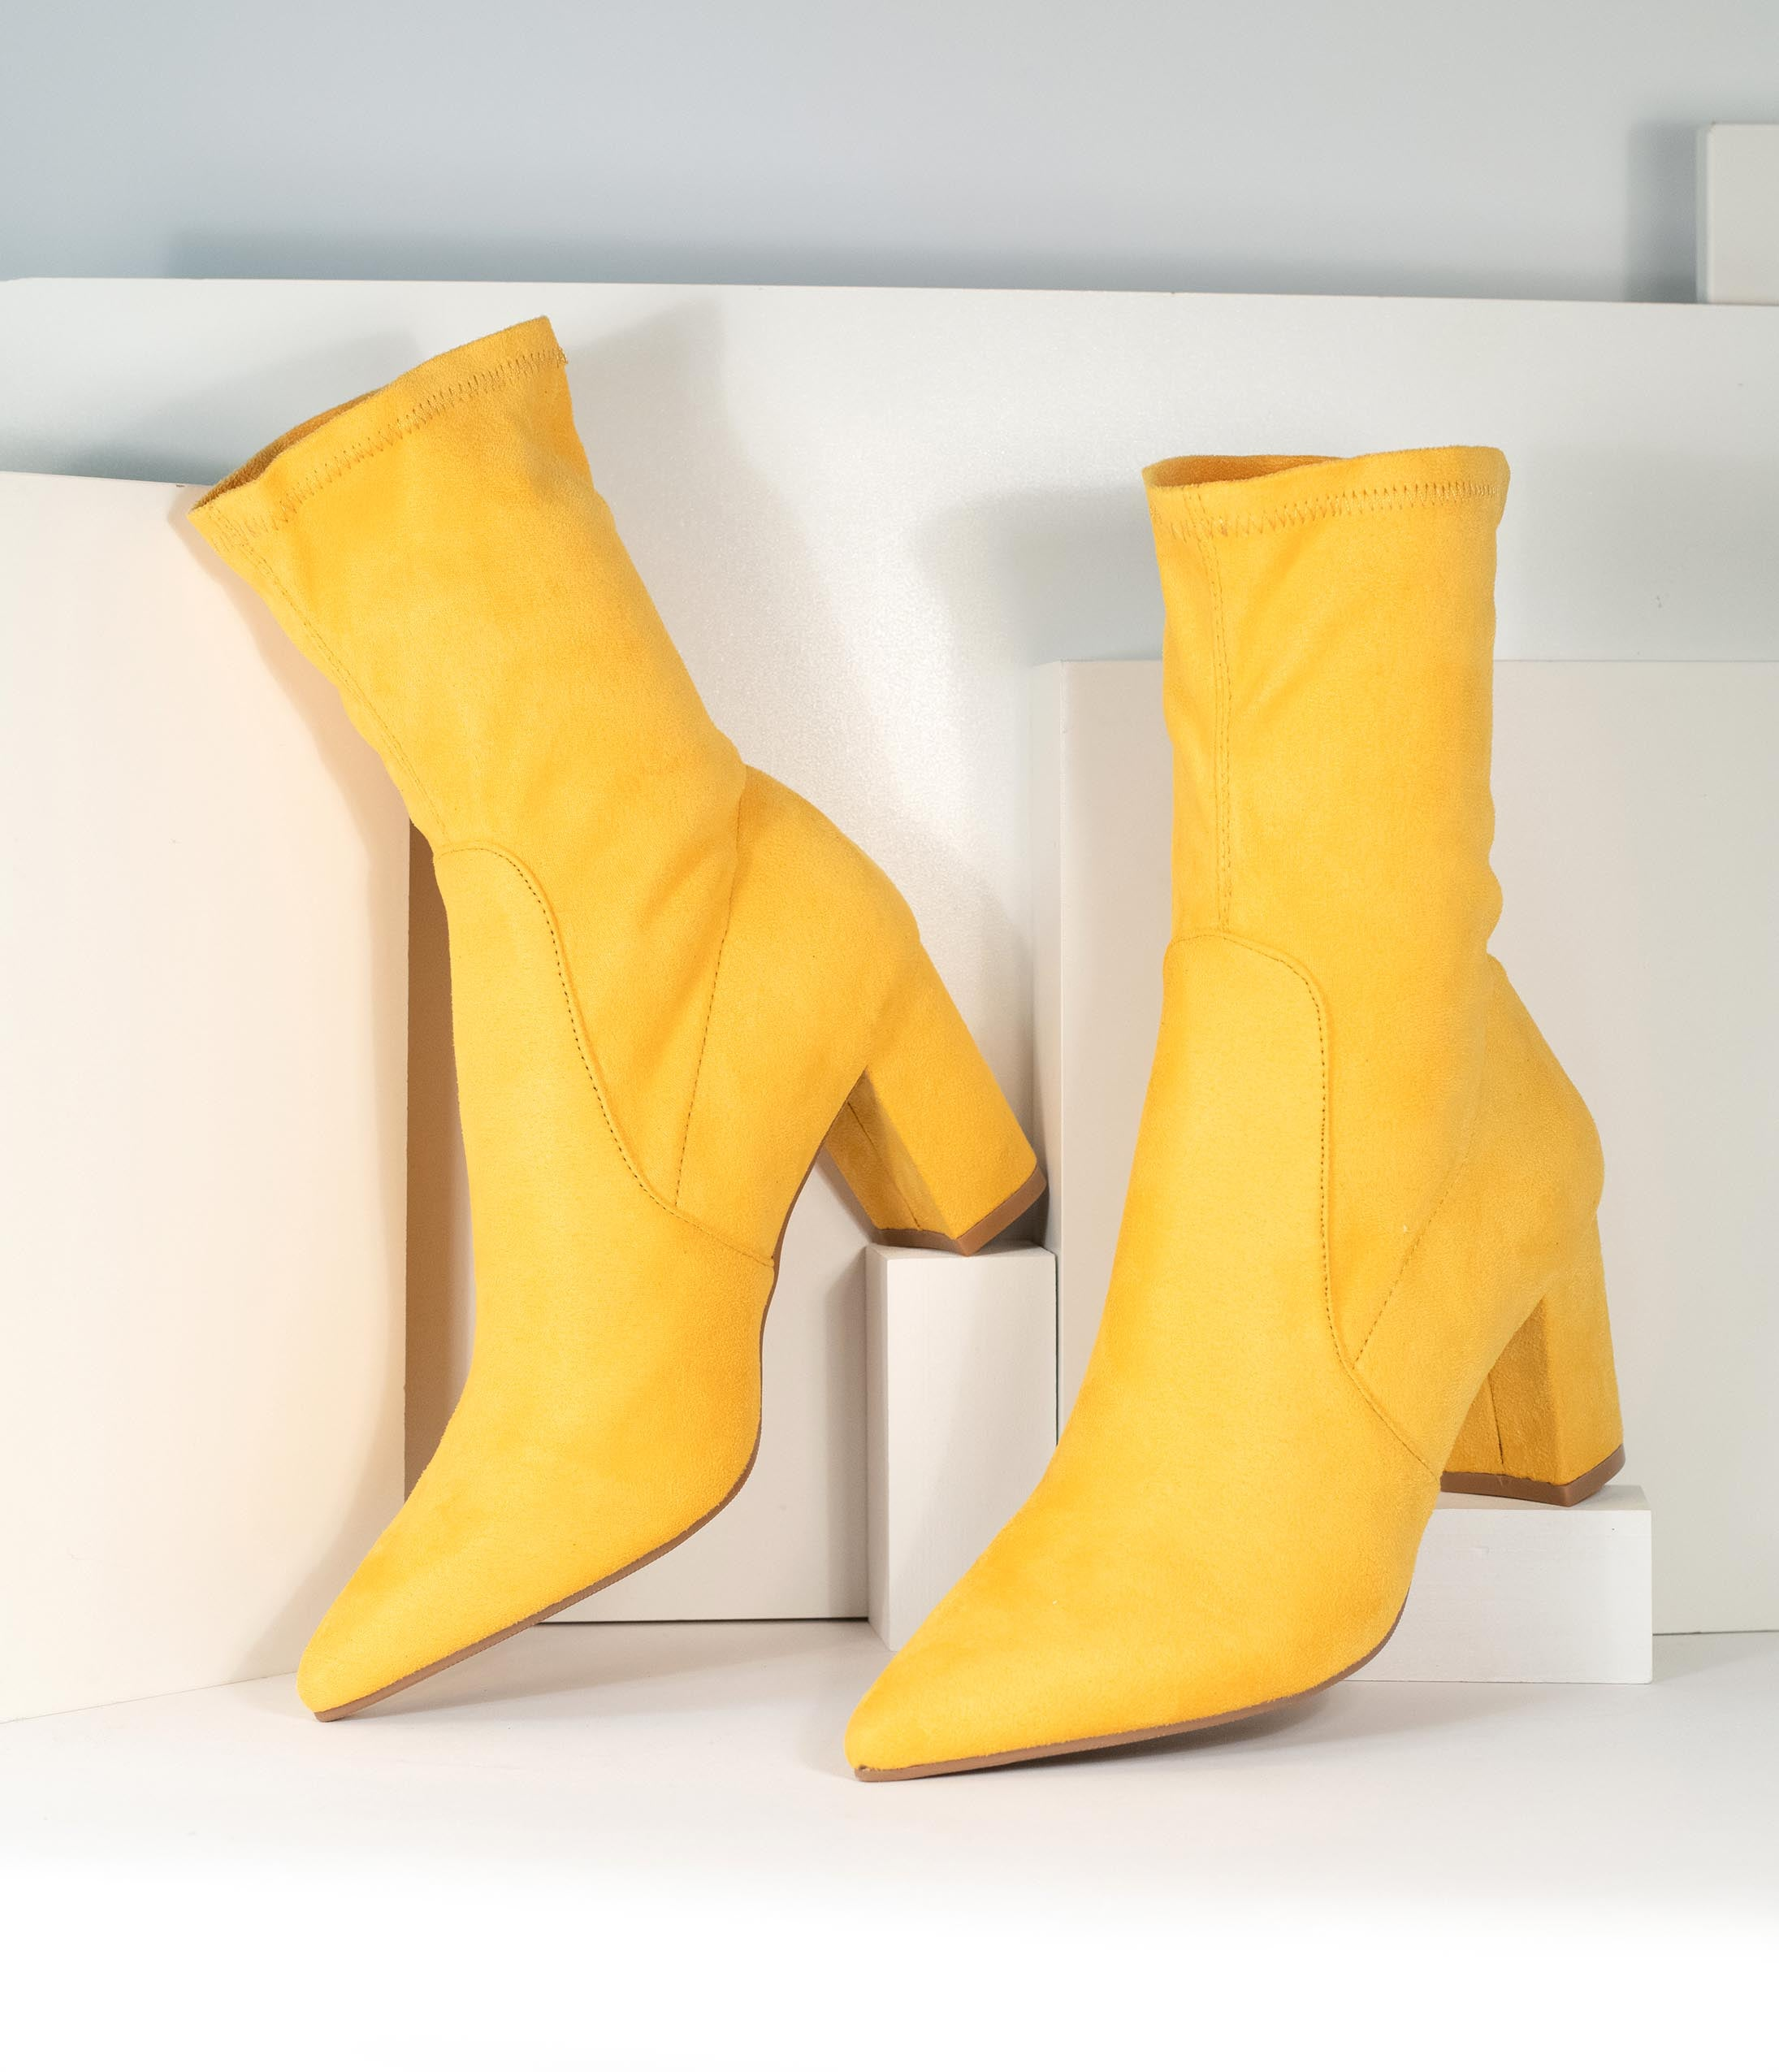 Vintage Boots, Retro Boots Mustard Suede Pointed Bootie $58.00 AT vintagedancer.com